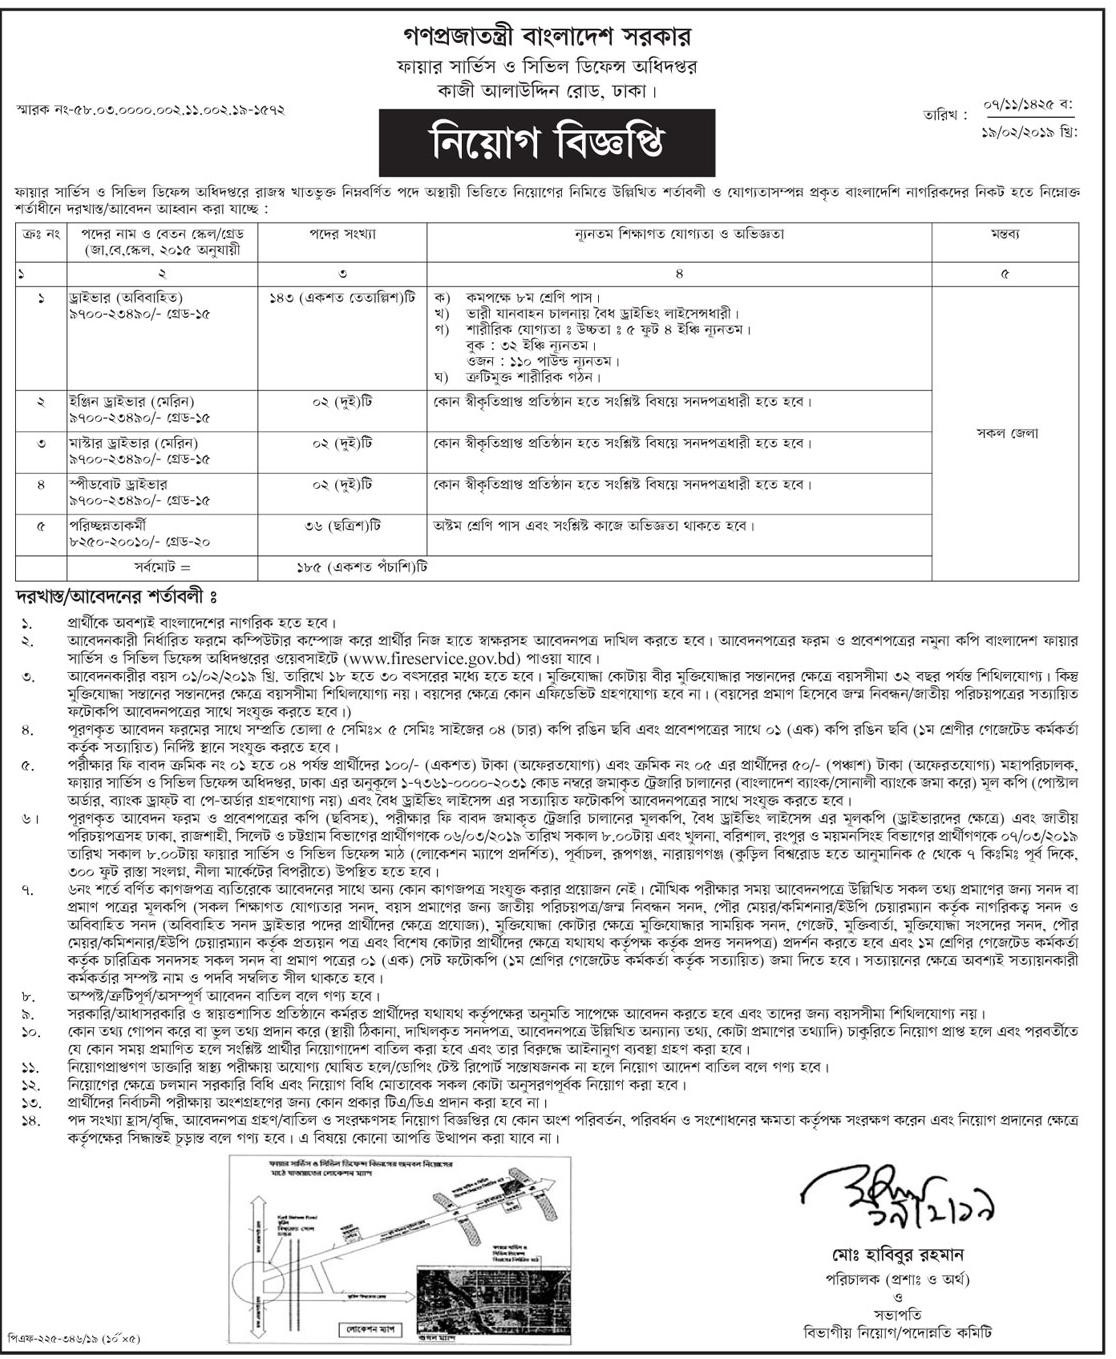 Bangladesh Fire Service and Civil Defence (FSCD) Job Circular 2019